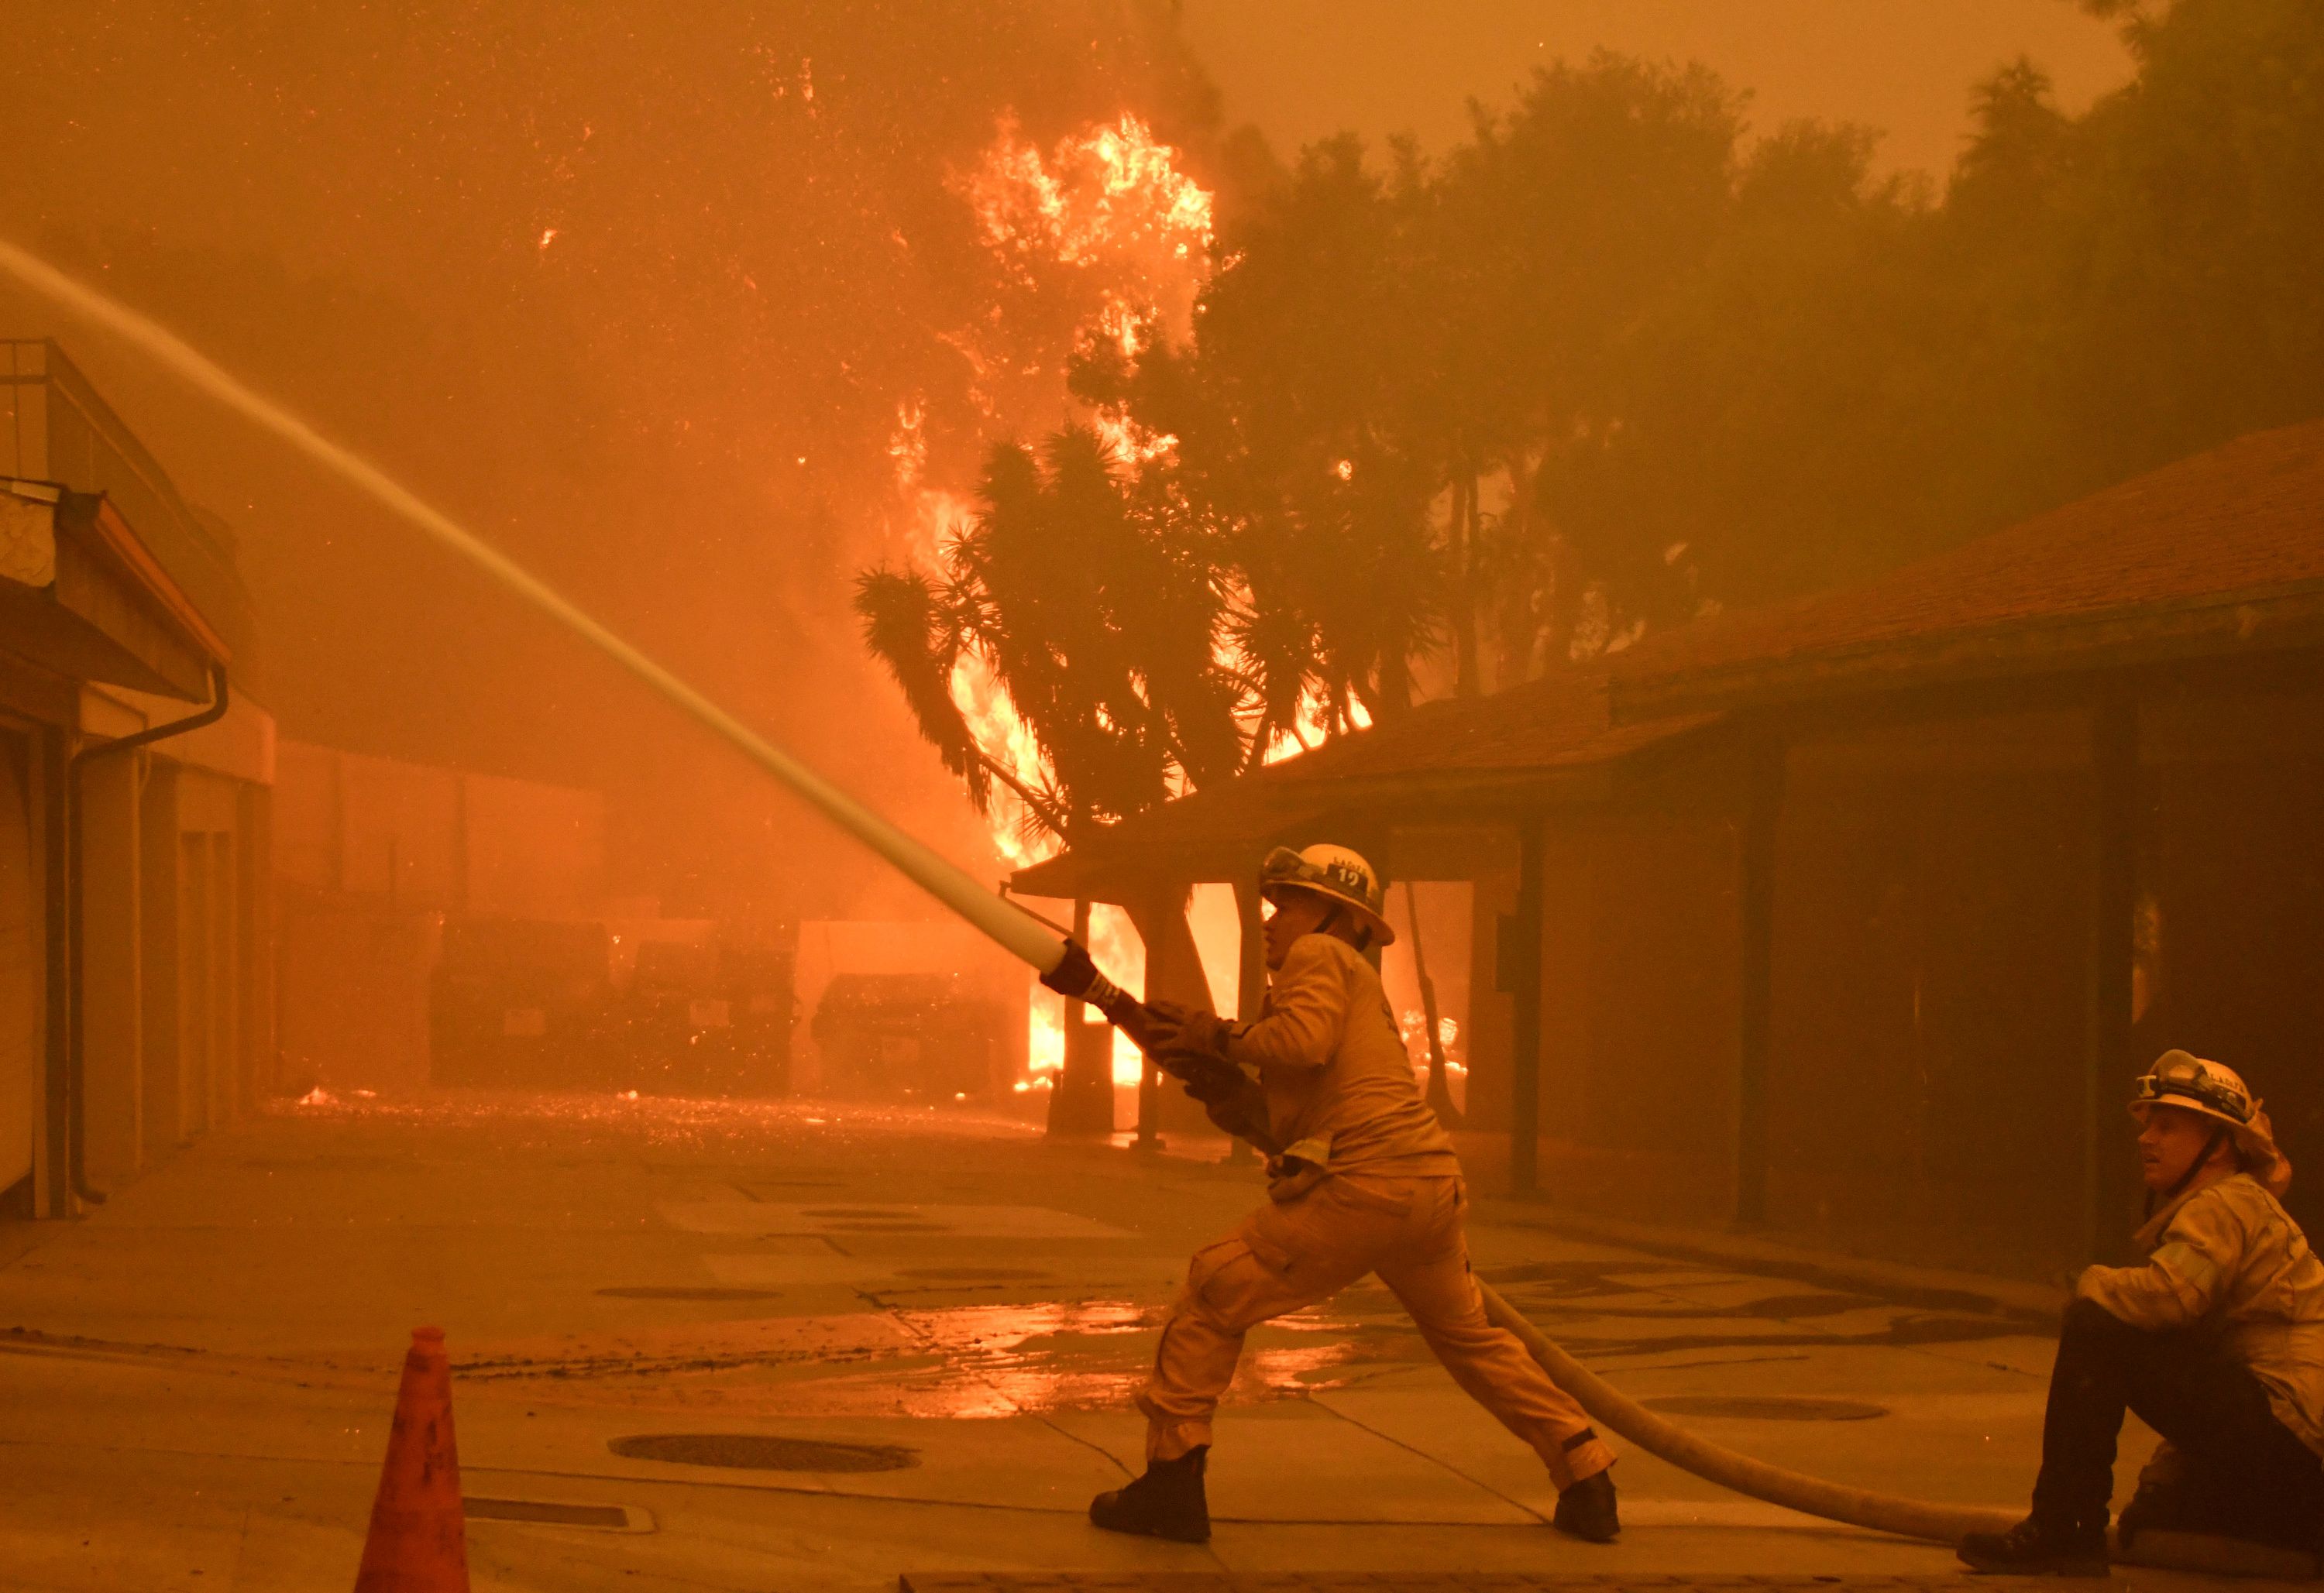 Firefighters hose down a condo unit during the Woolsey Fire in Malibu